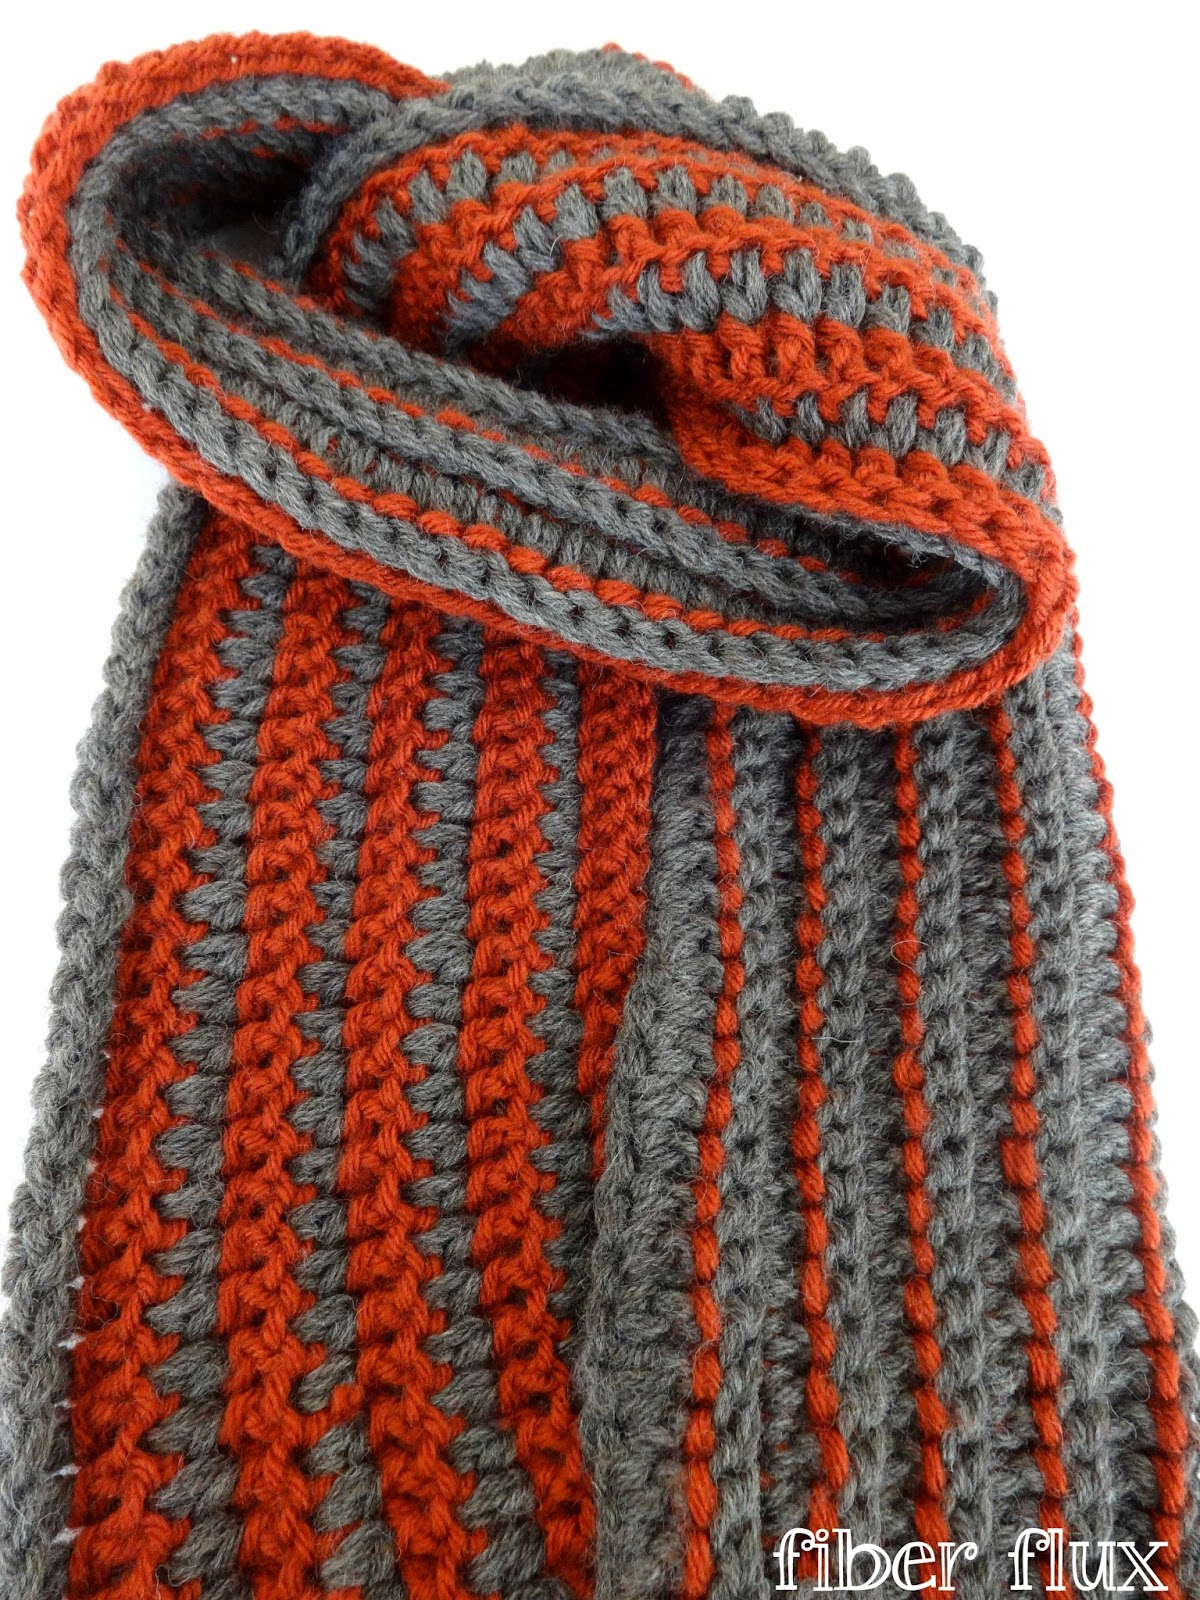 Free Crochet Patterns For A Man s Scarf : Fiber Flux: Free Crochet Pattern...The Every Man Scarf